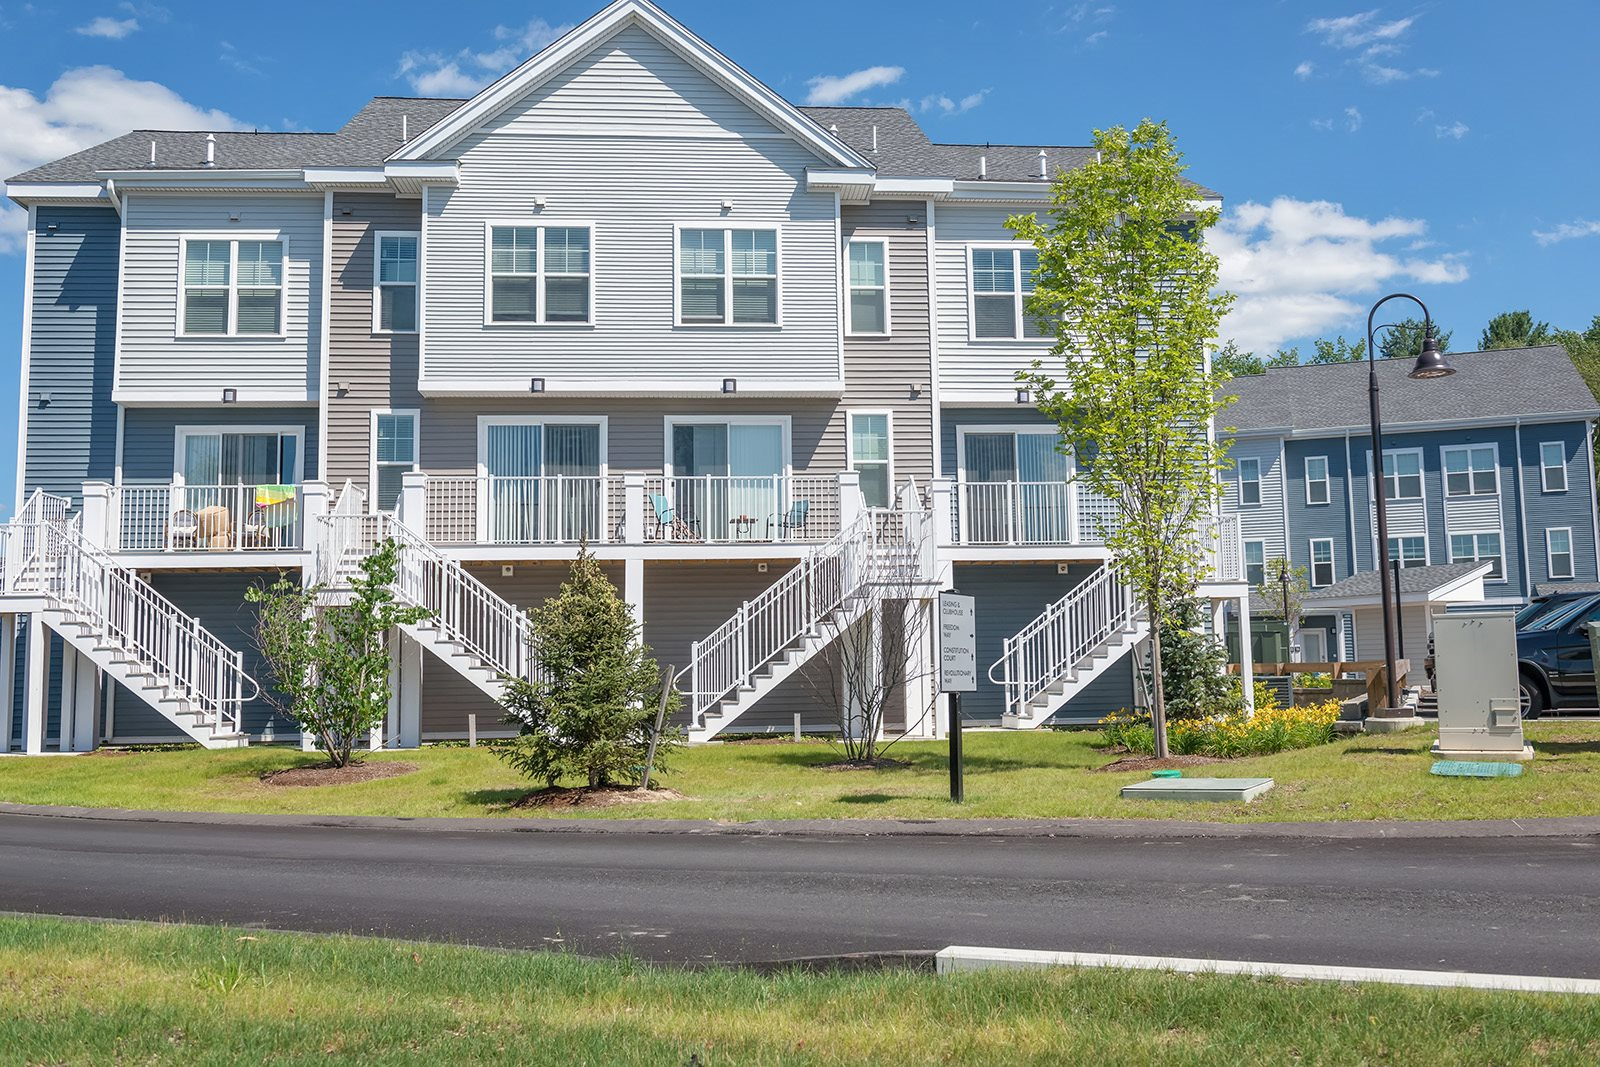 Apartment Community Grounds at Hopkinton by Windsor, Massachusetts